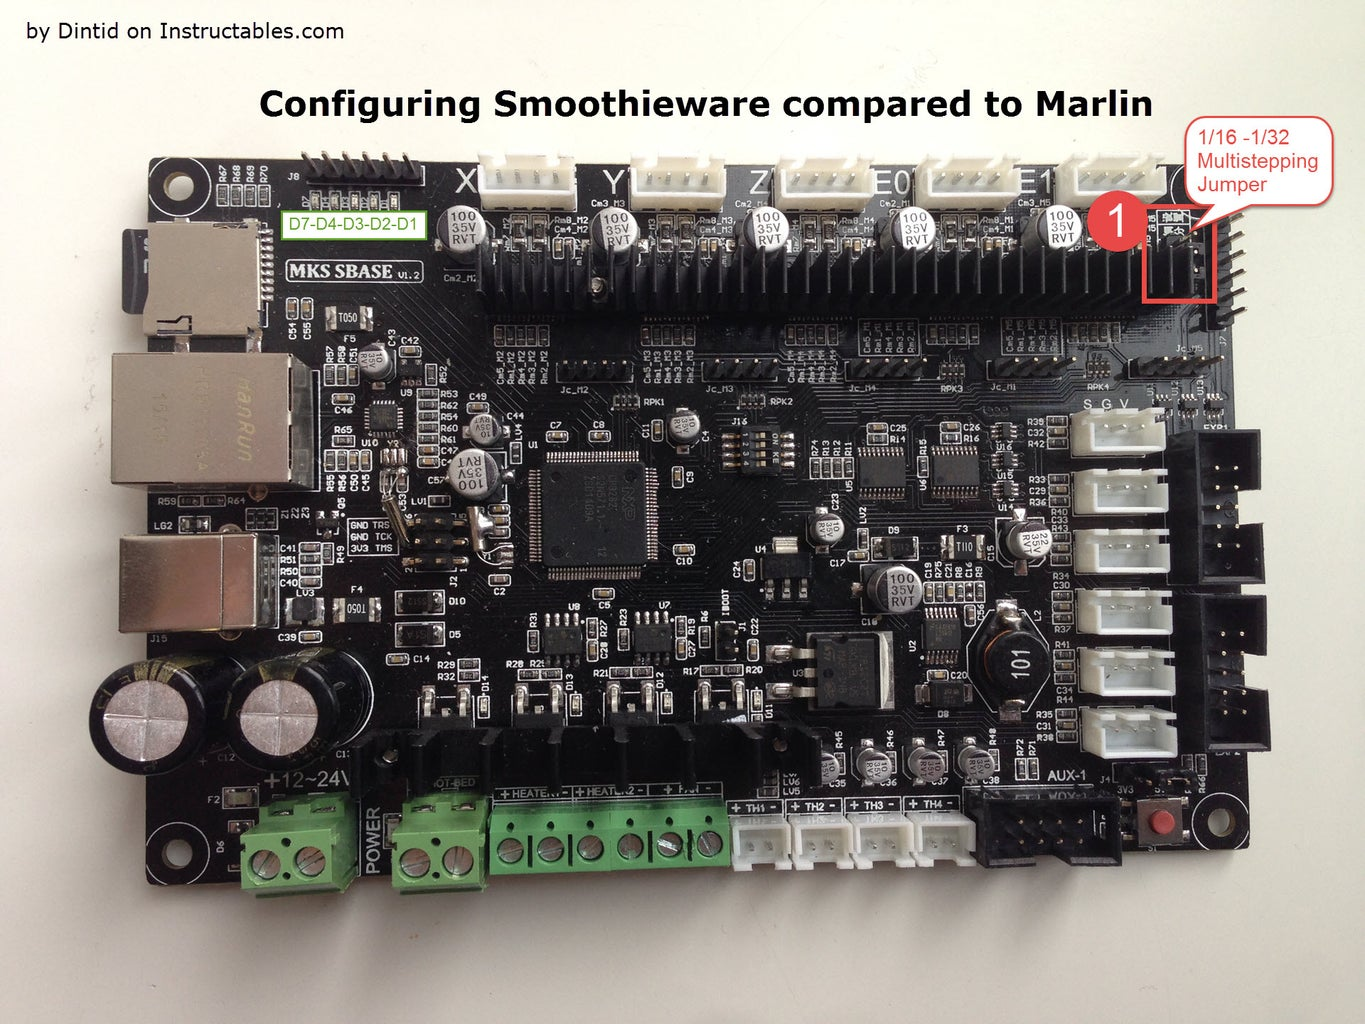 Configuring Smoothieware Compared to Marlin